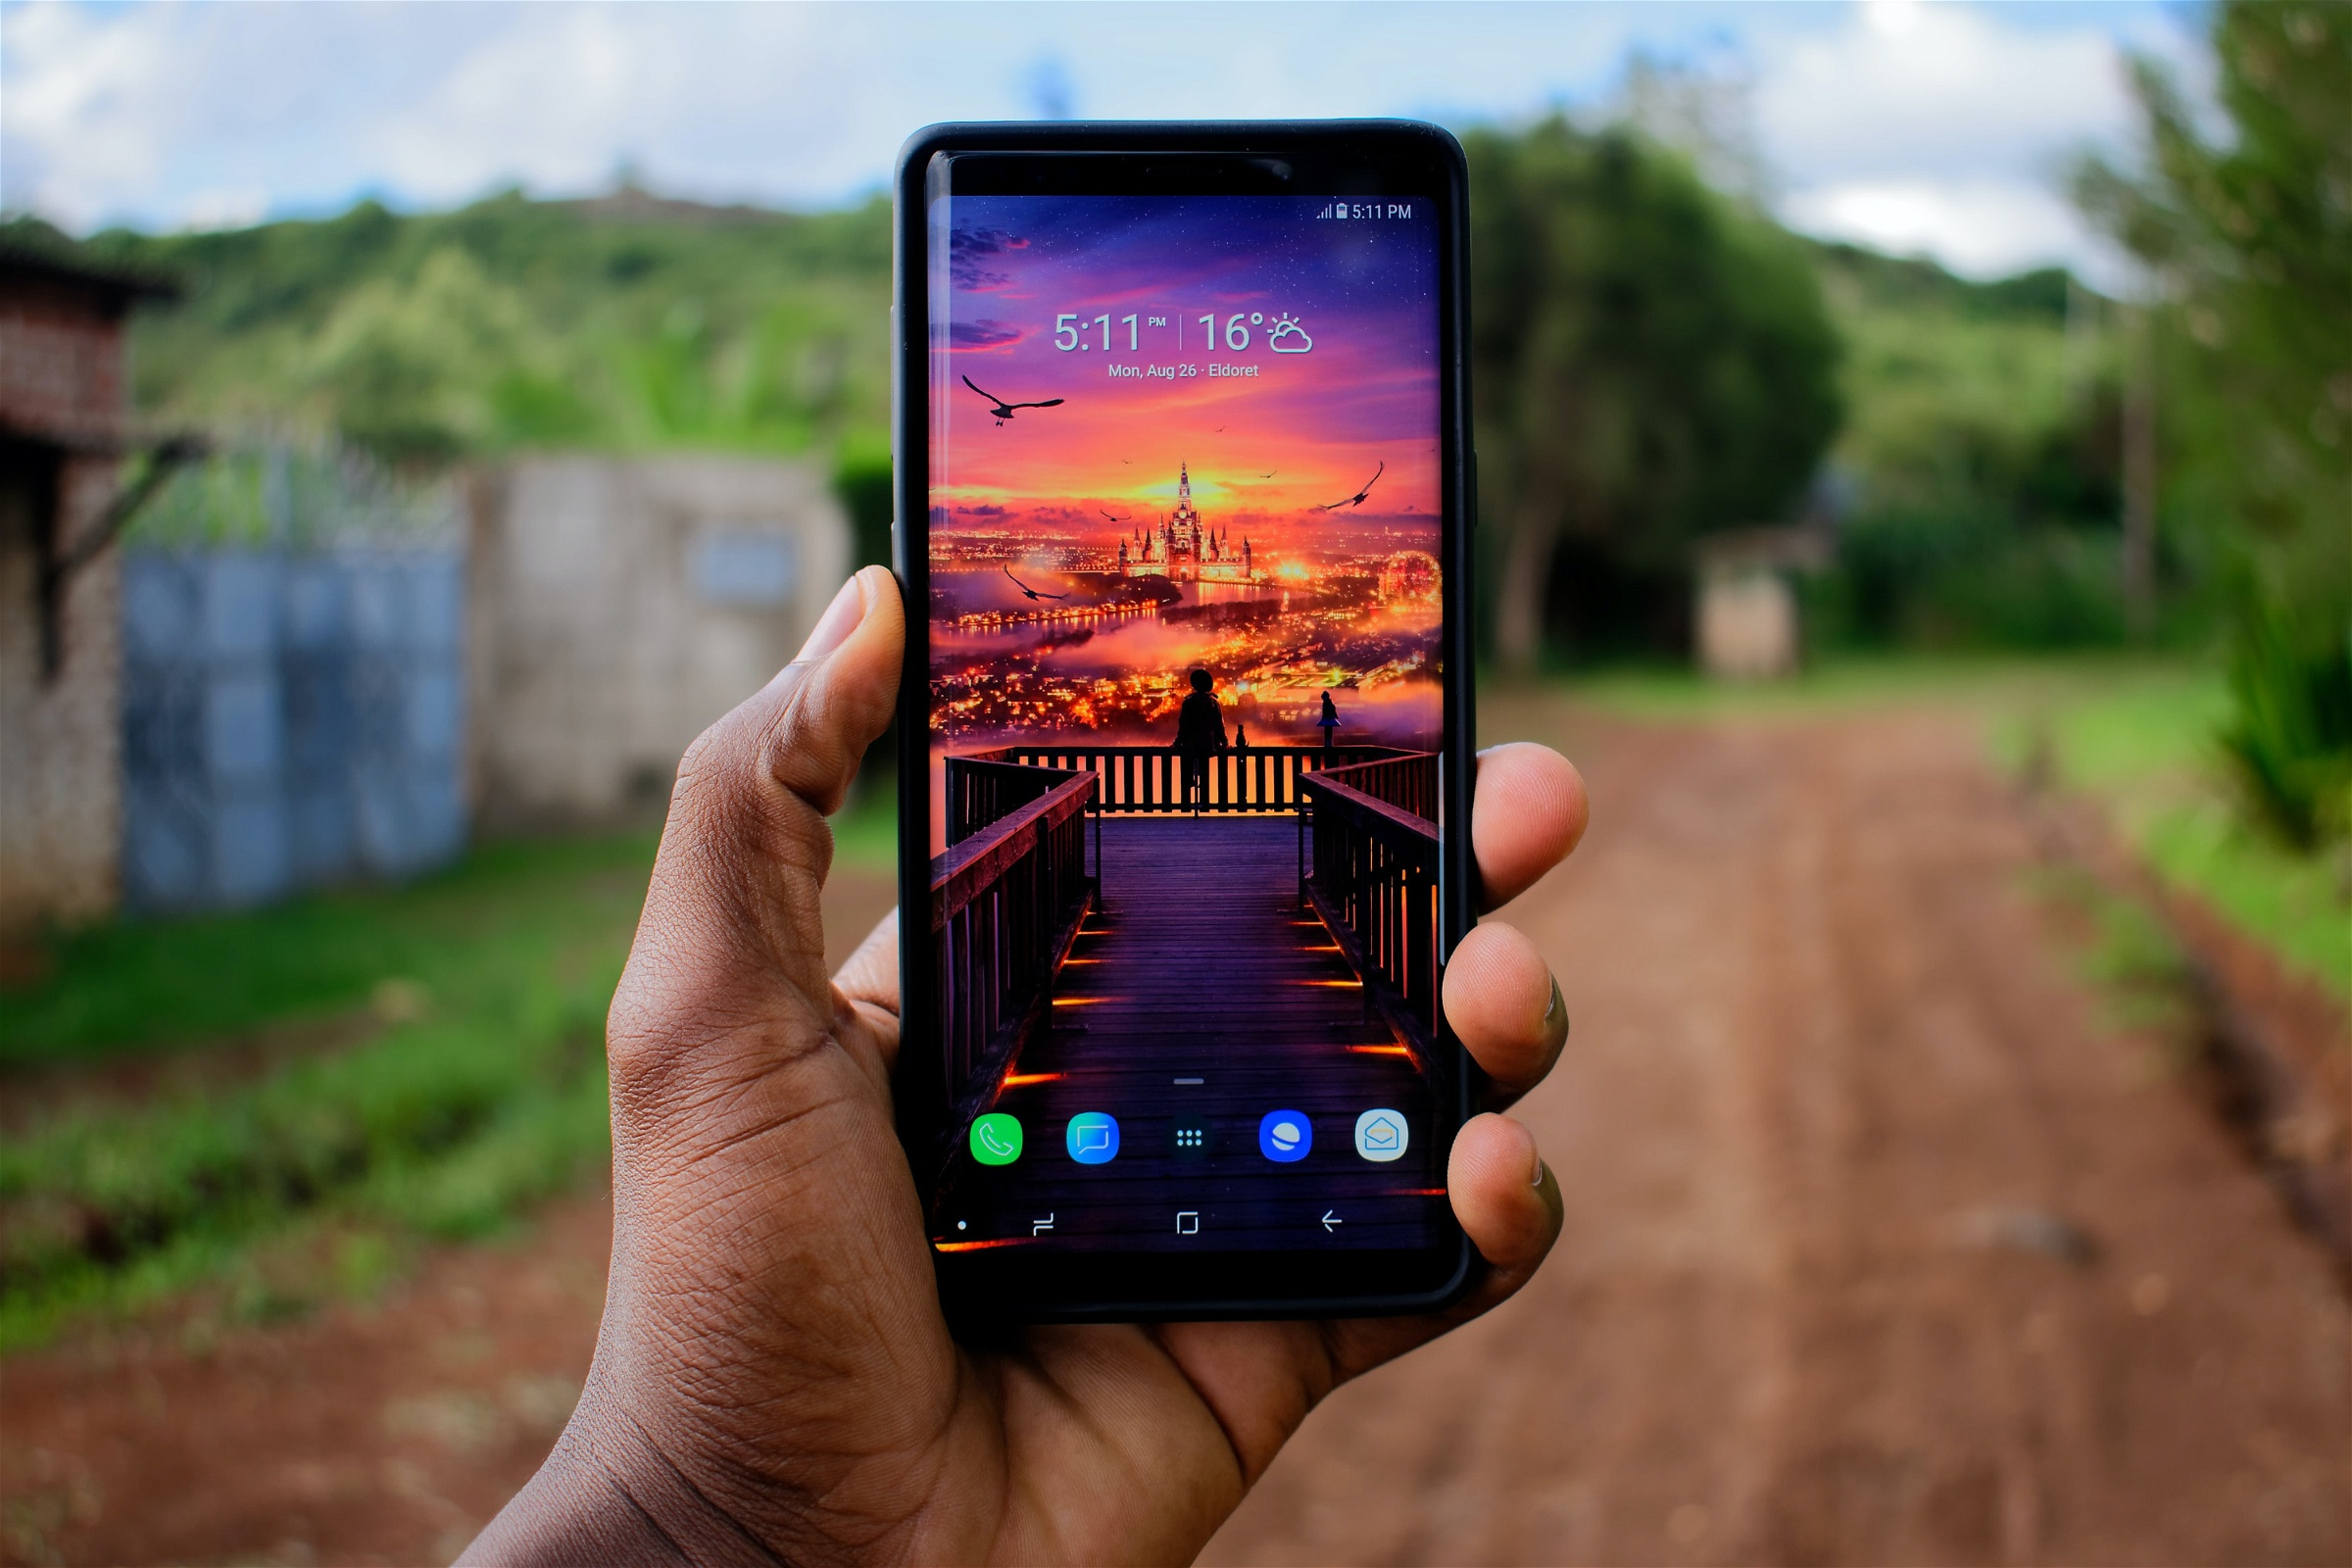 black hand holding a samsung galaxy note 9 android phone